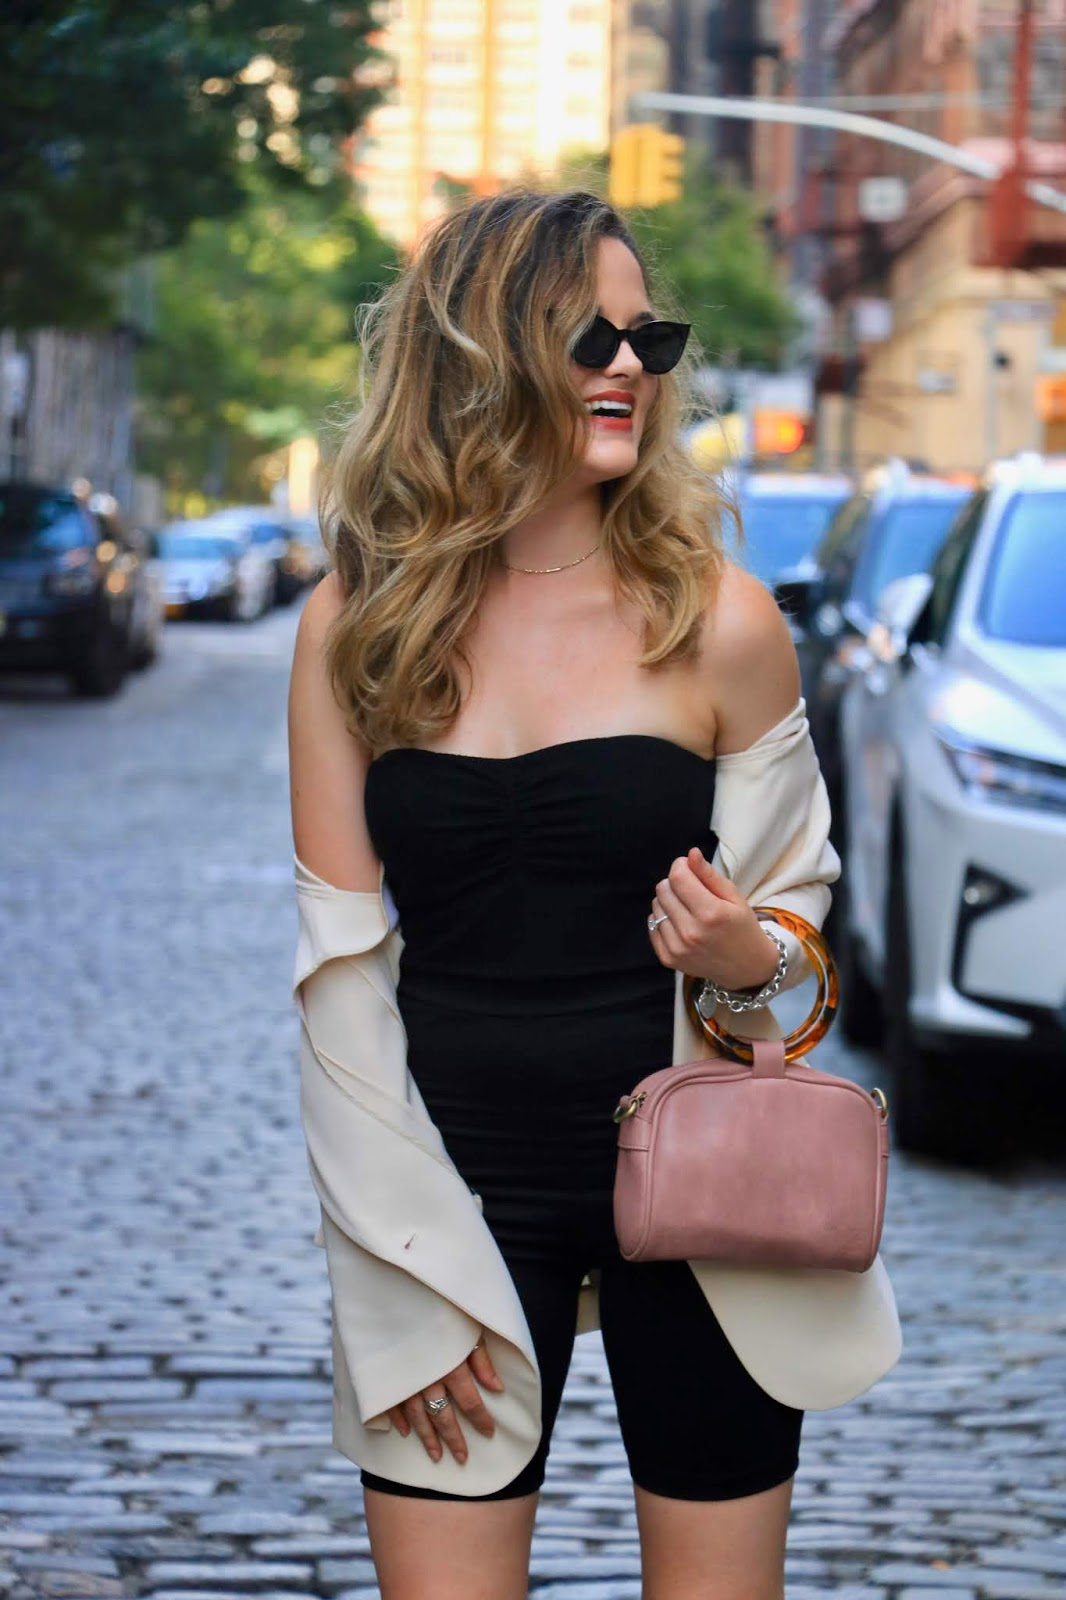 Nyc fashion blogger Kathleen Harper's hot girls summer pic.